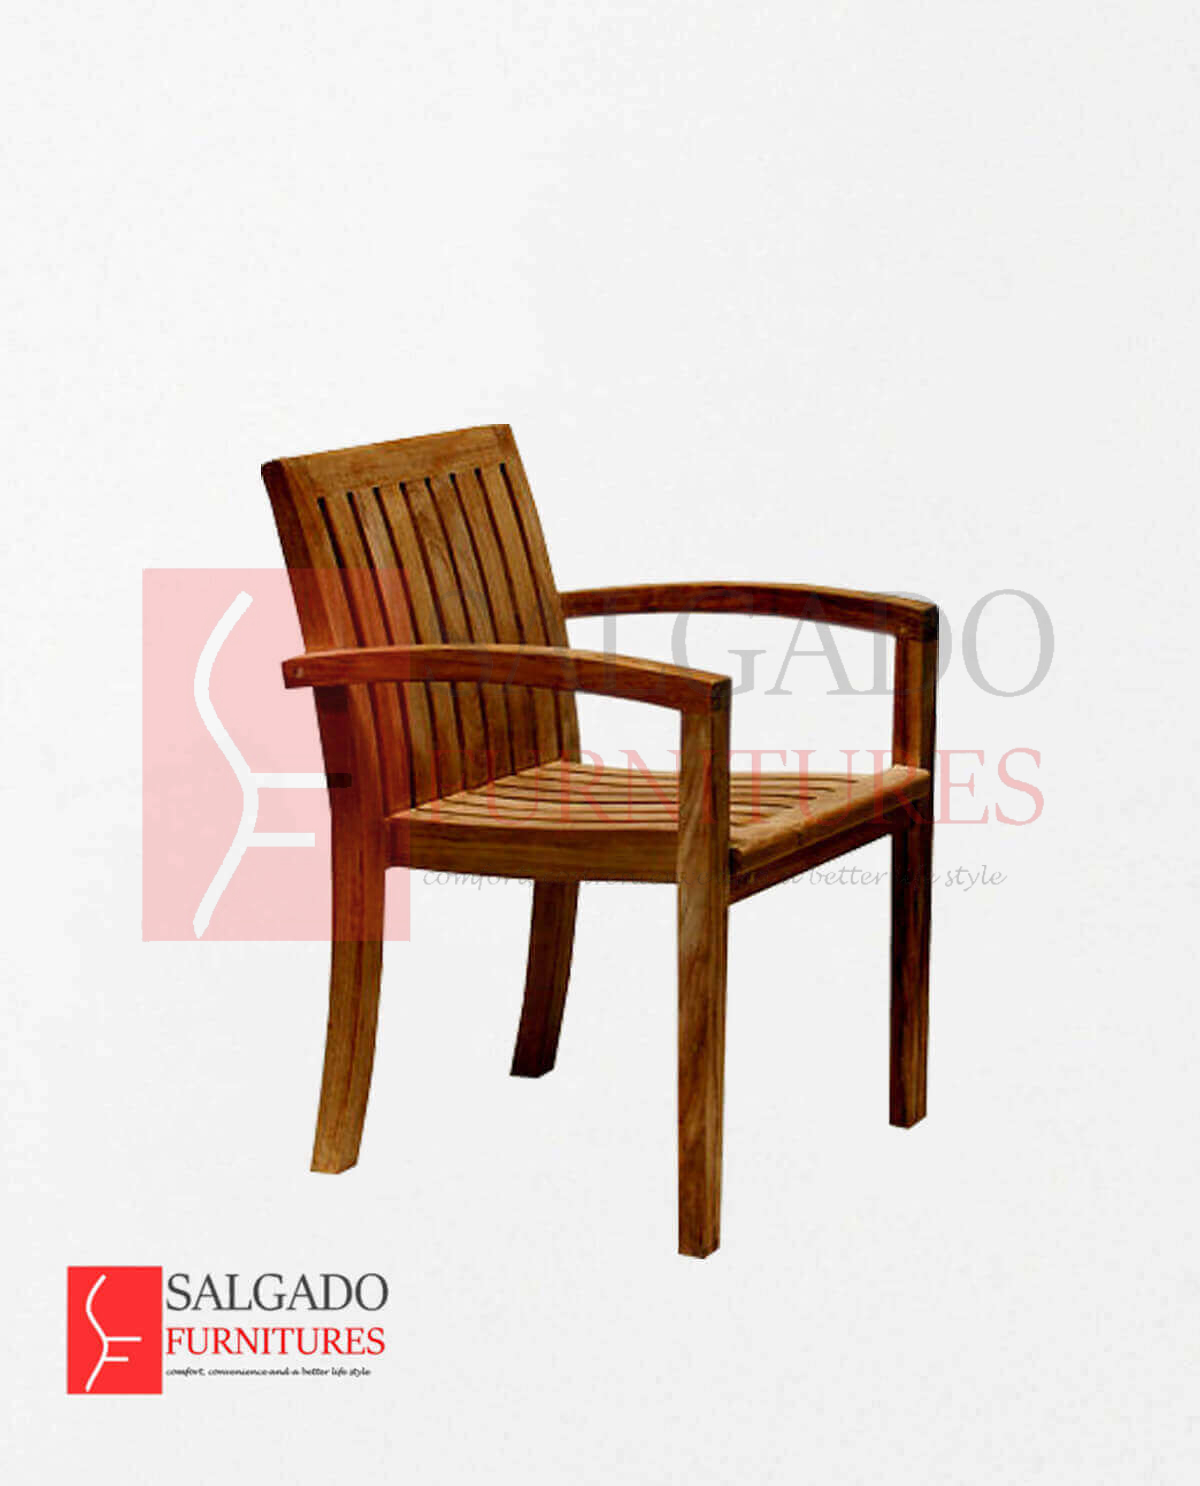 varandha-arm-chair